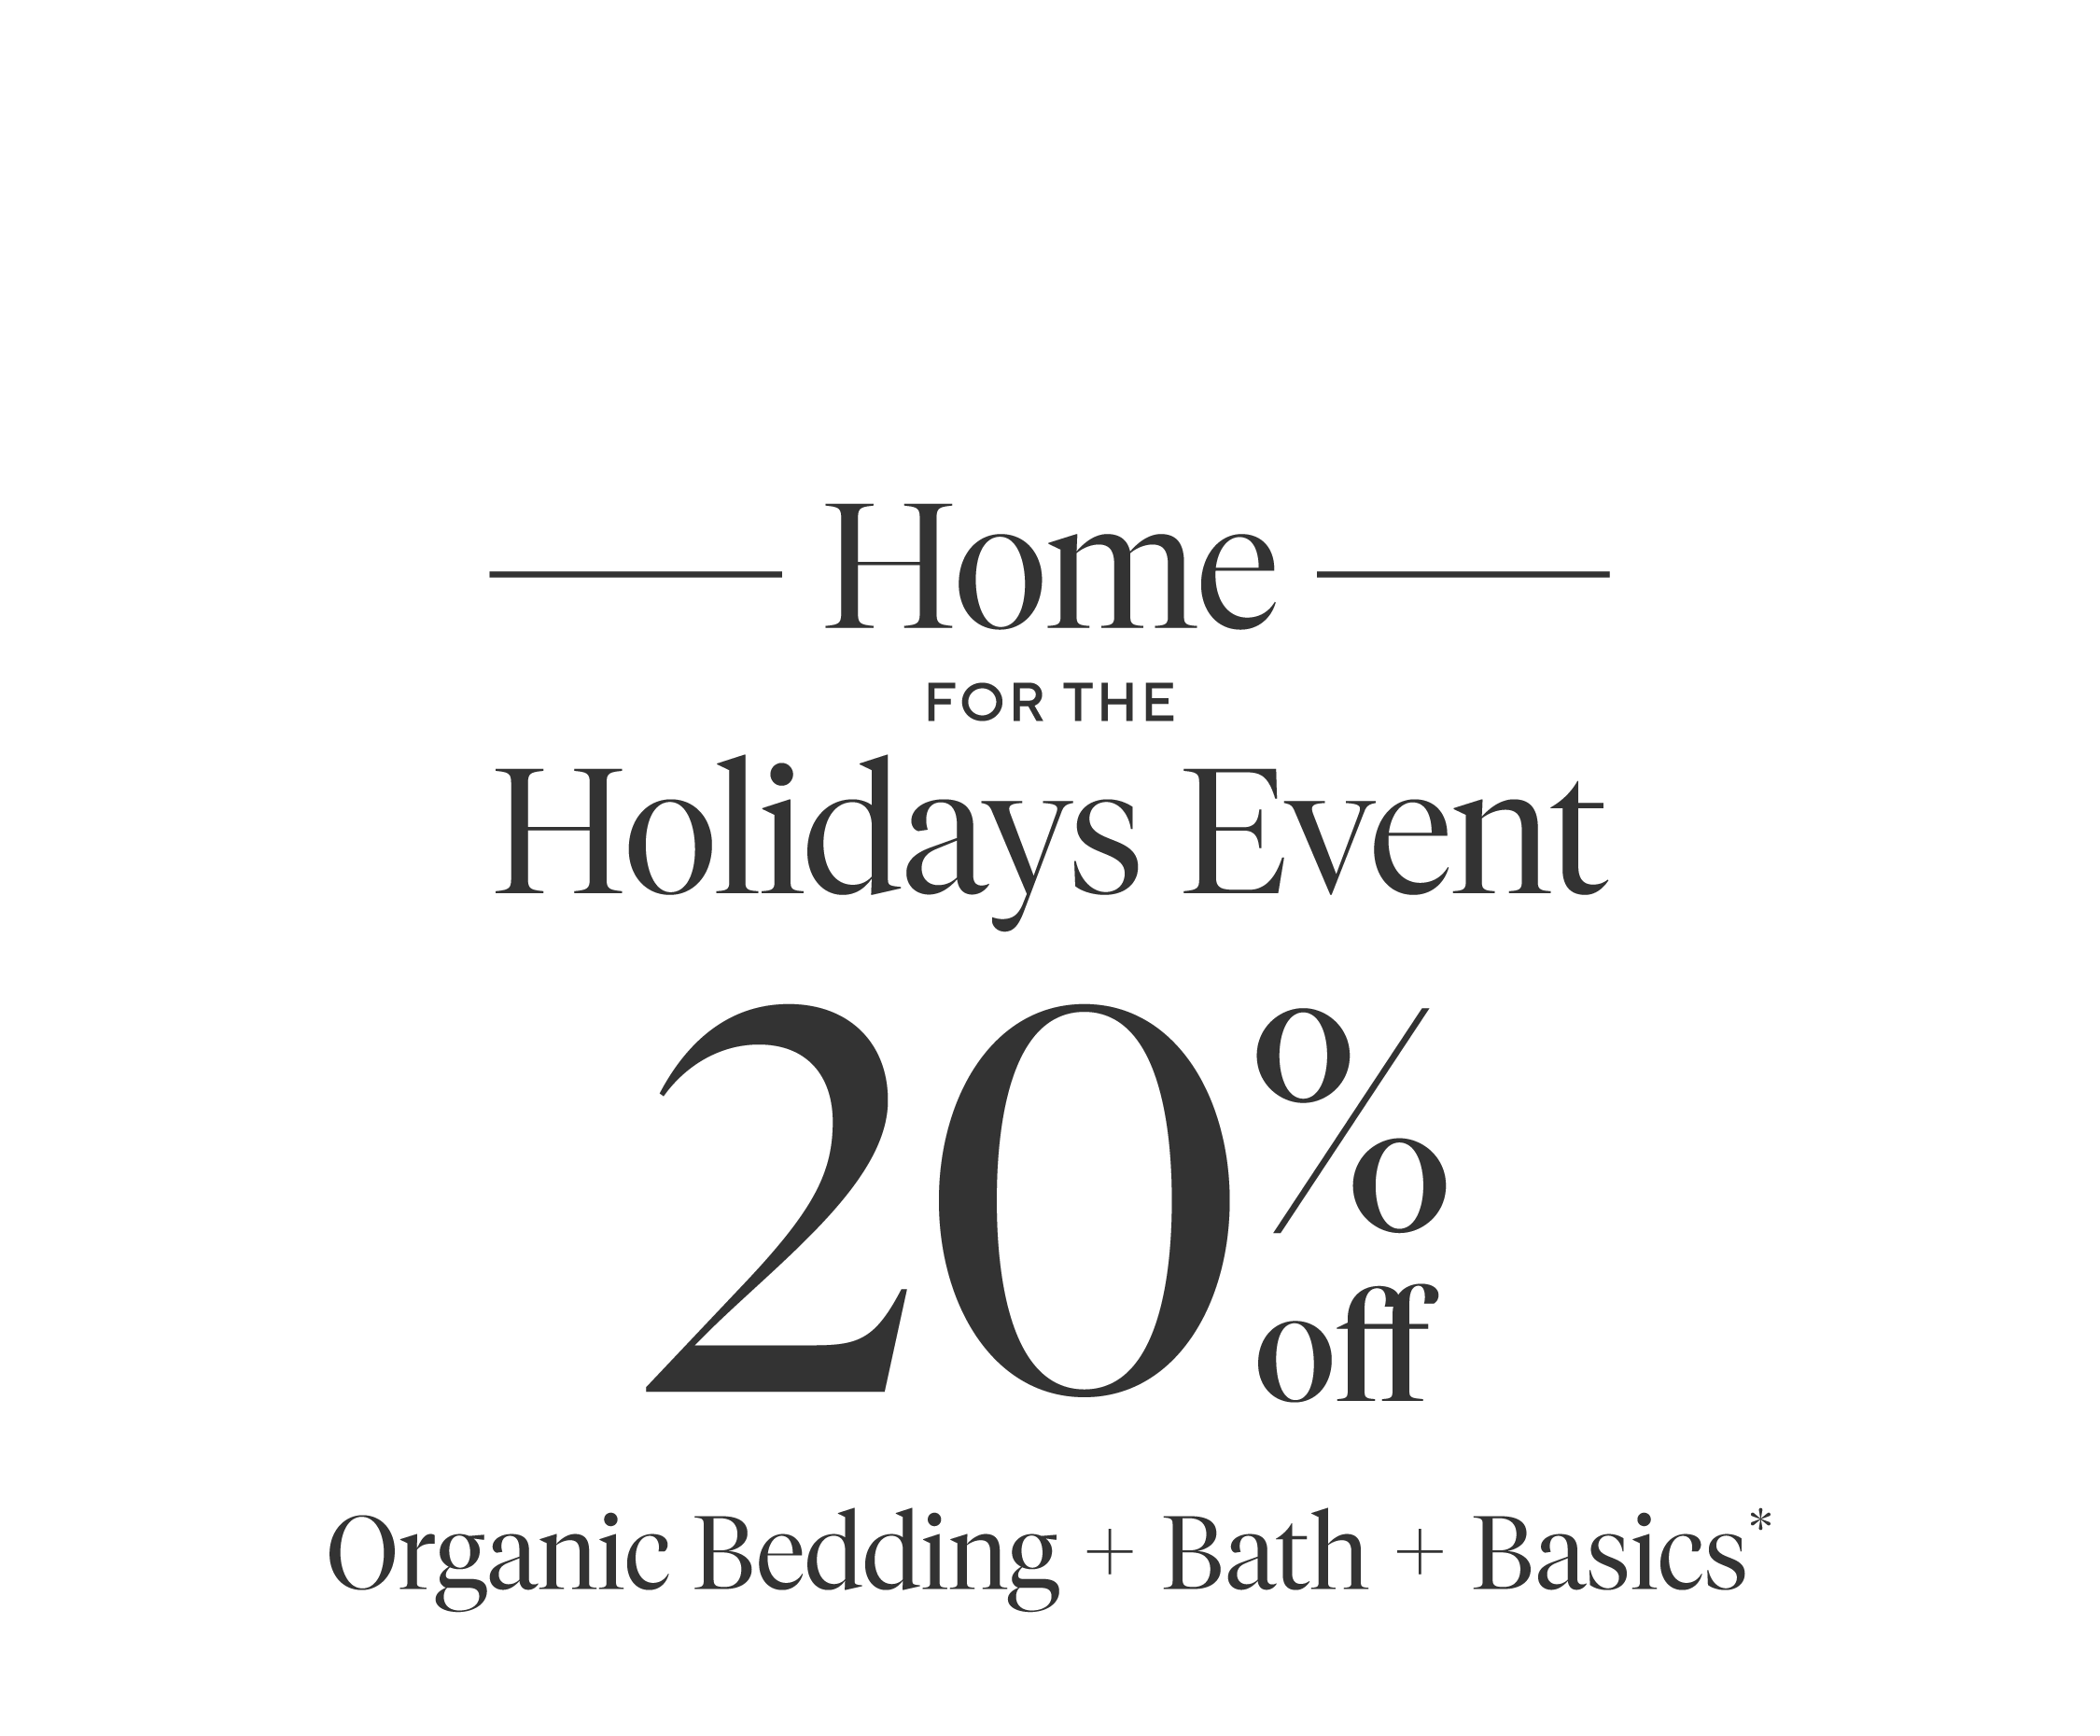 Home For The Holidays event, 20% off organic bedding, bath and basics